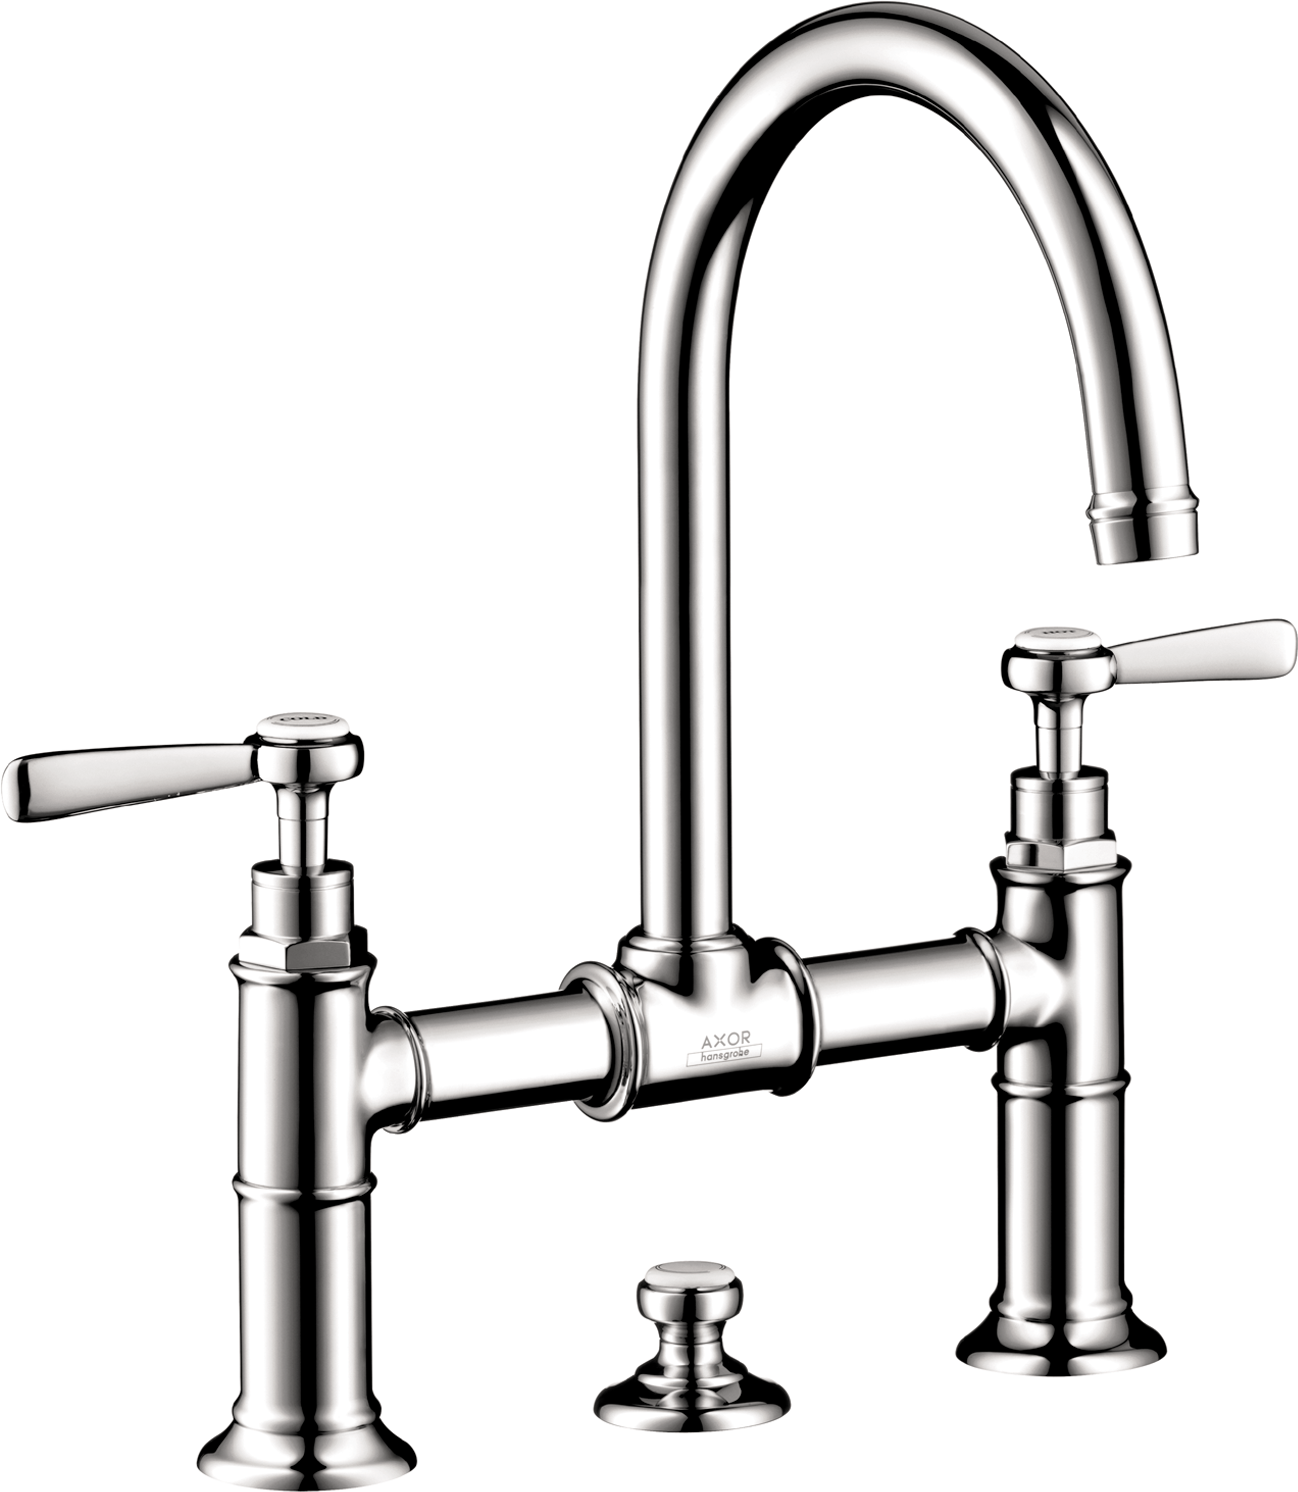 Axor AXOR Montreux Widespread Faucet with Lever Handles, Bridge Model, 1.2 GPM